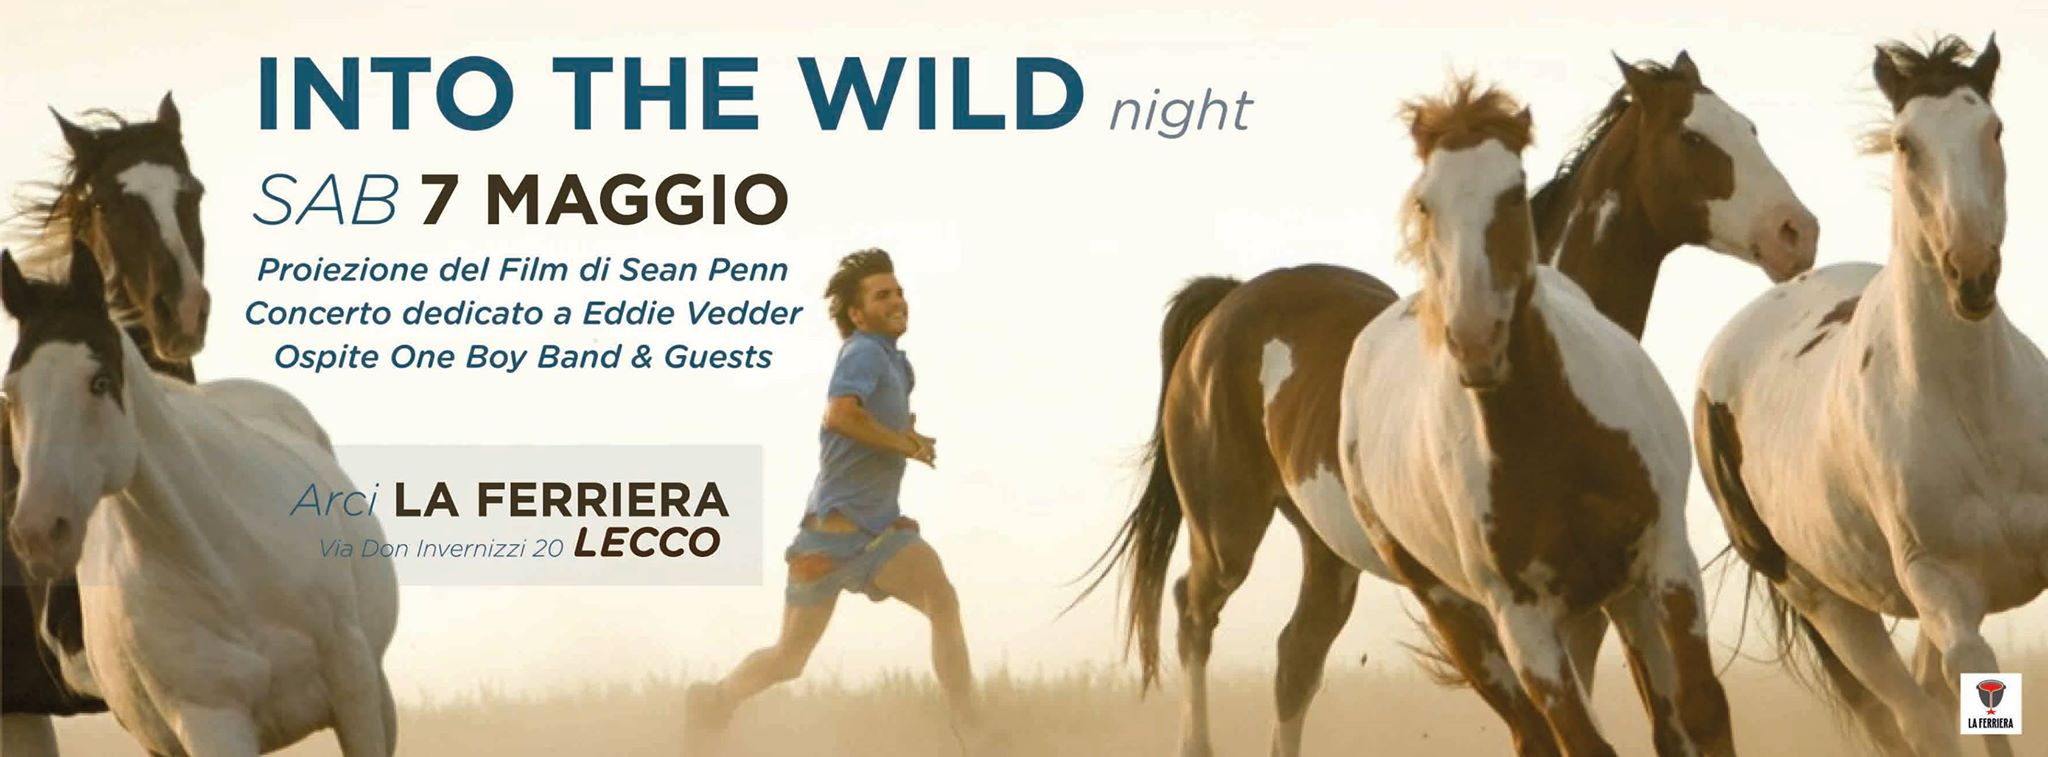 INTO THE WILD Night